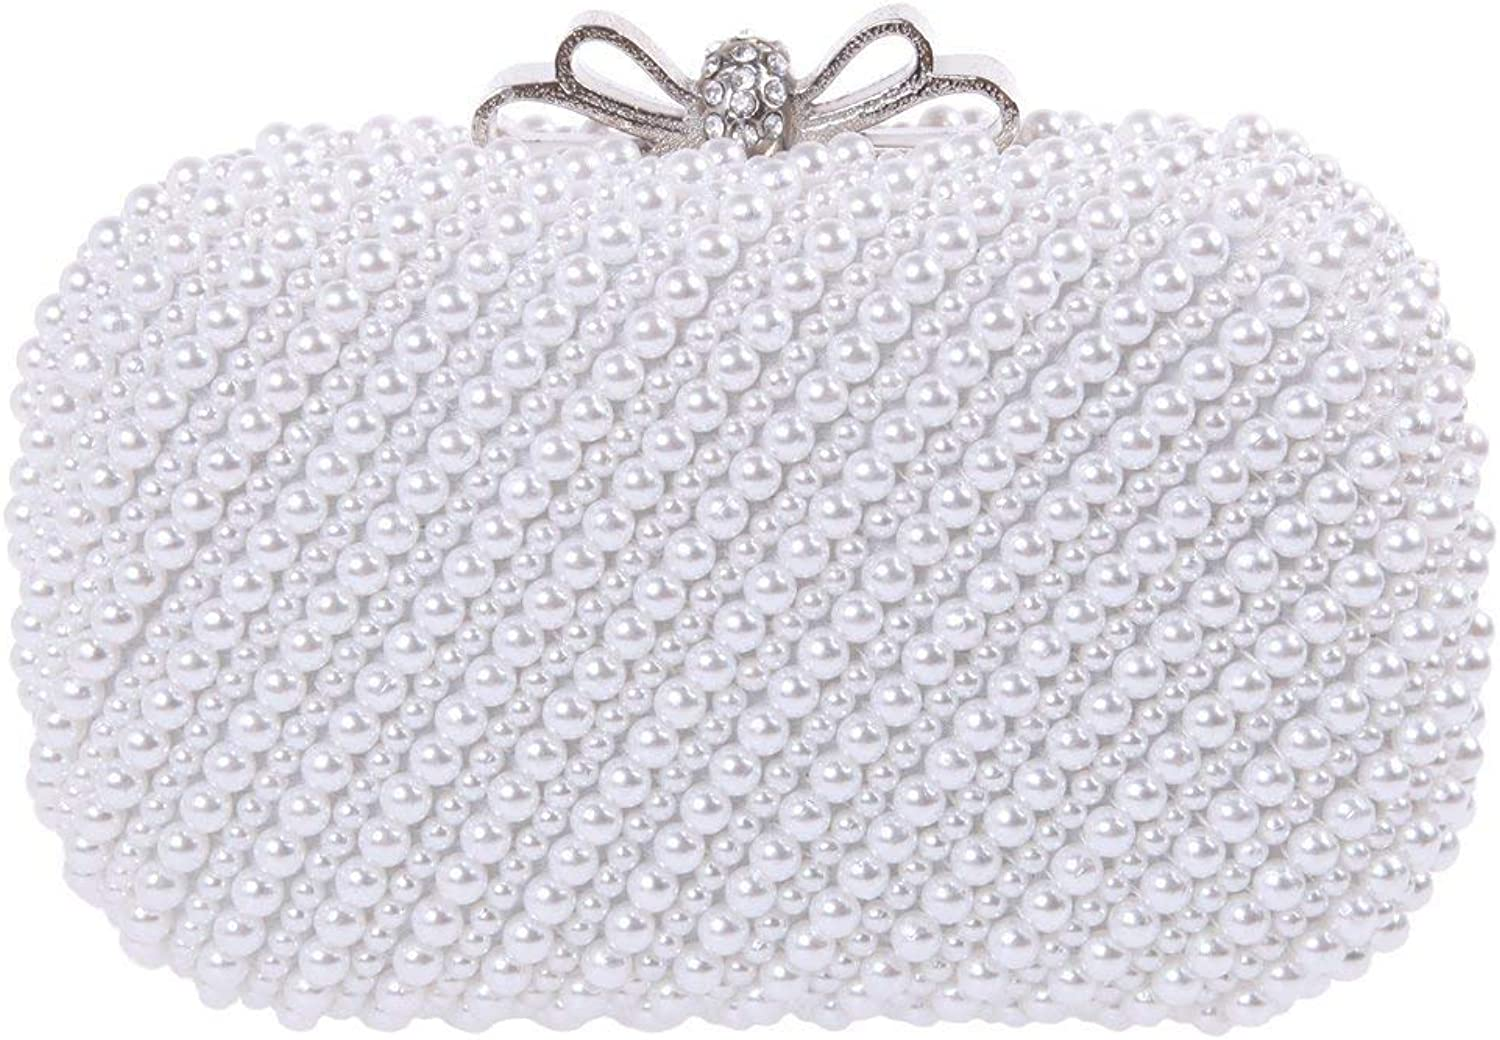 Santimon Women Clutch Pearl Bling Bow Clutch Purse Wedding Evening Bags with Removable Strap